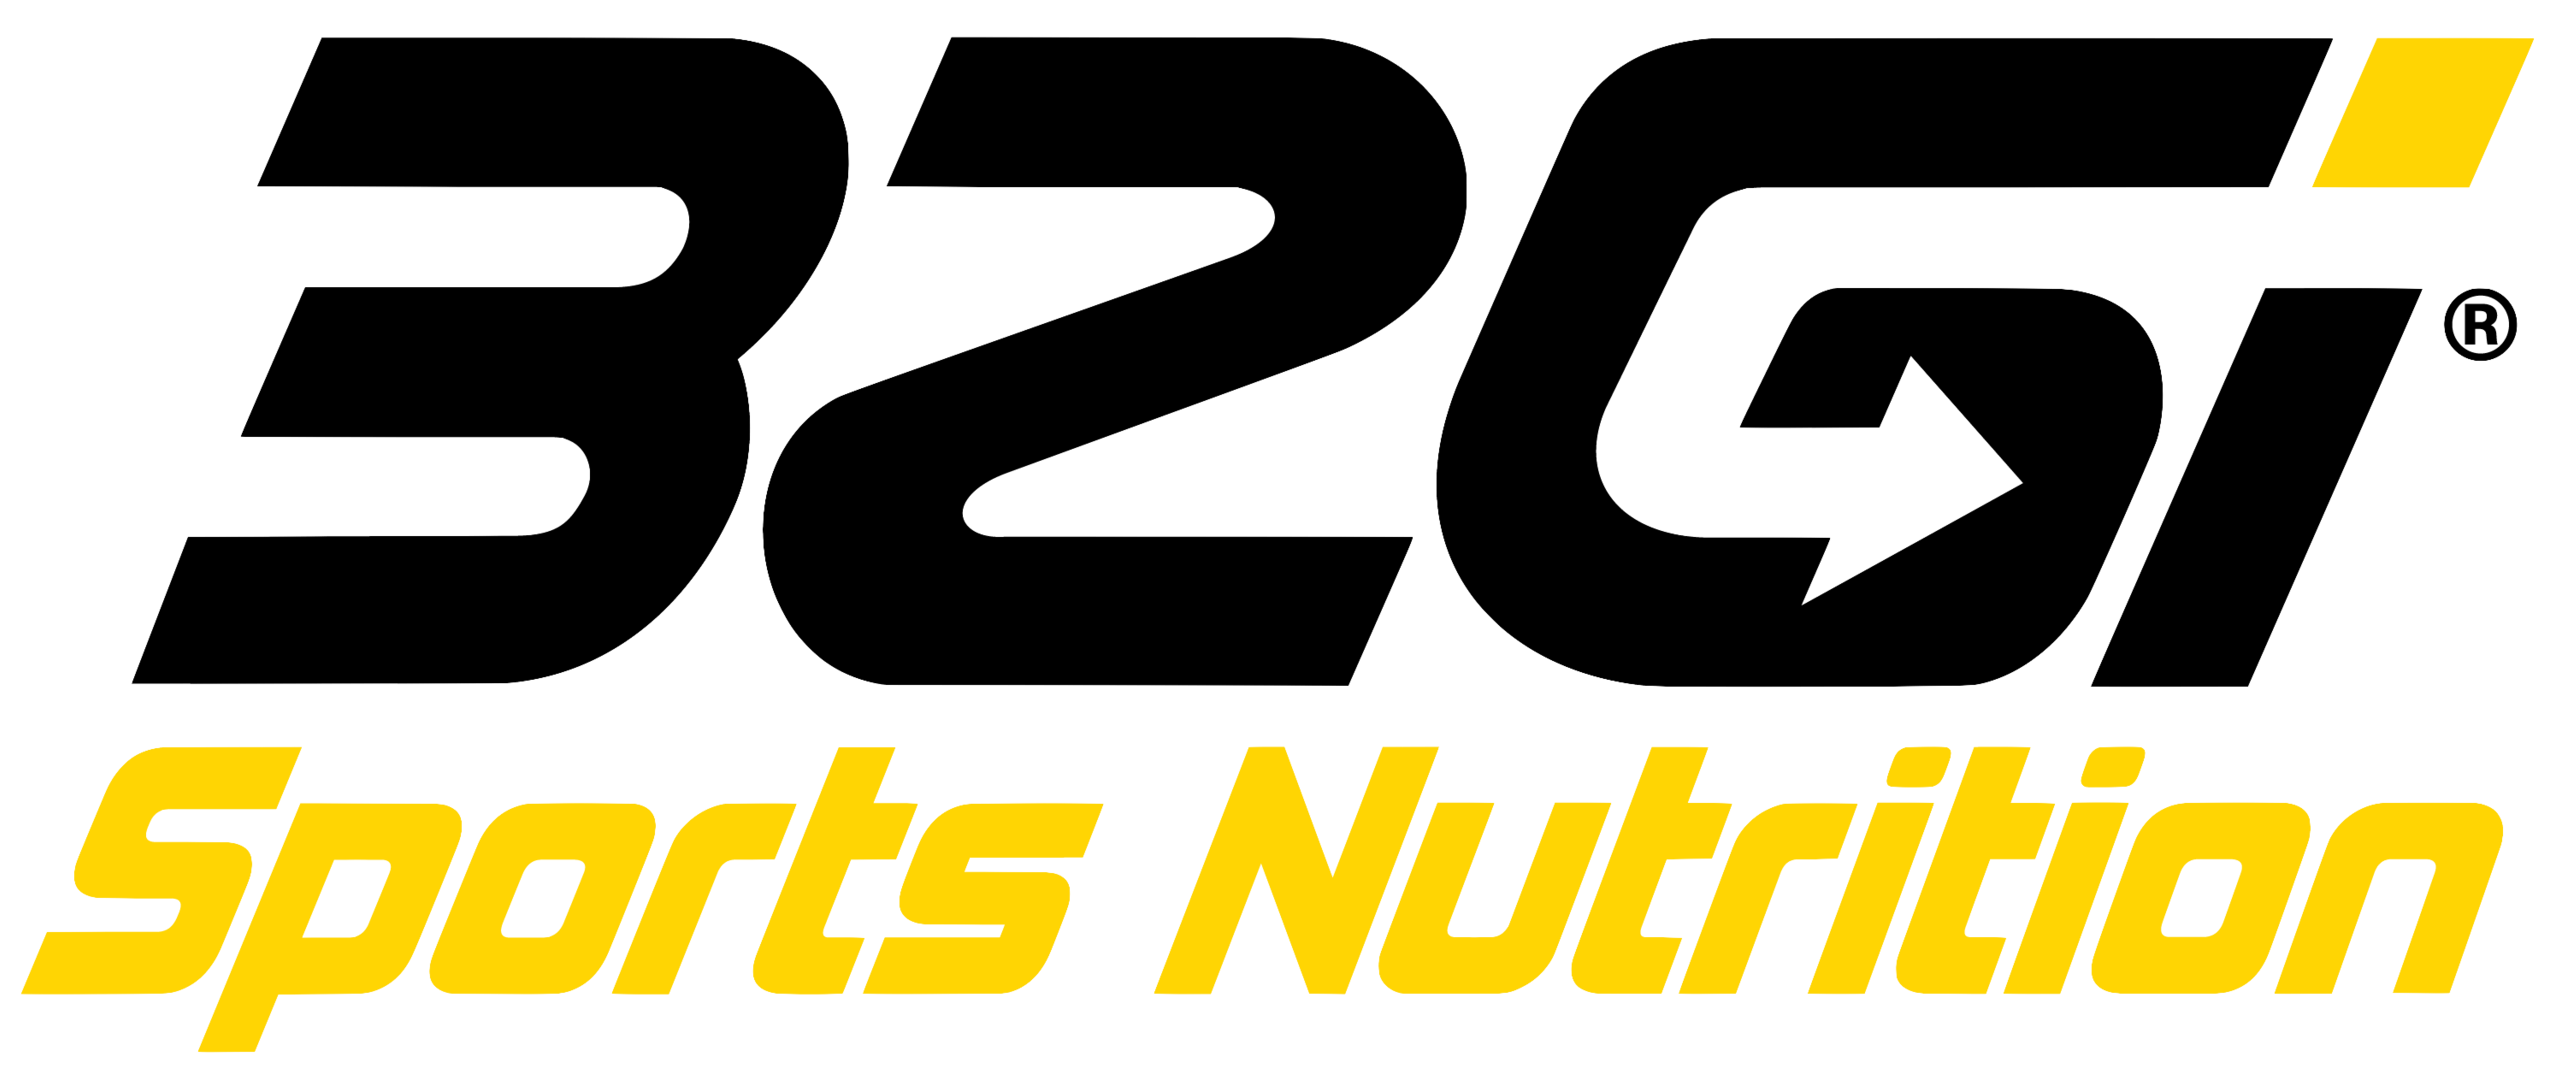 32gi%20sports%20nutrition%20logo